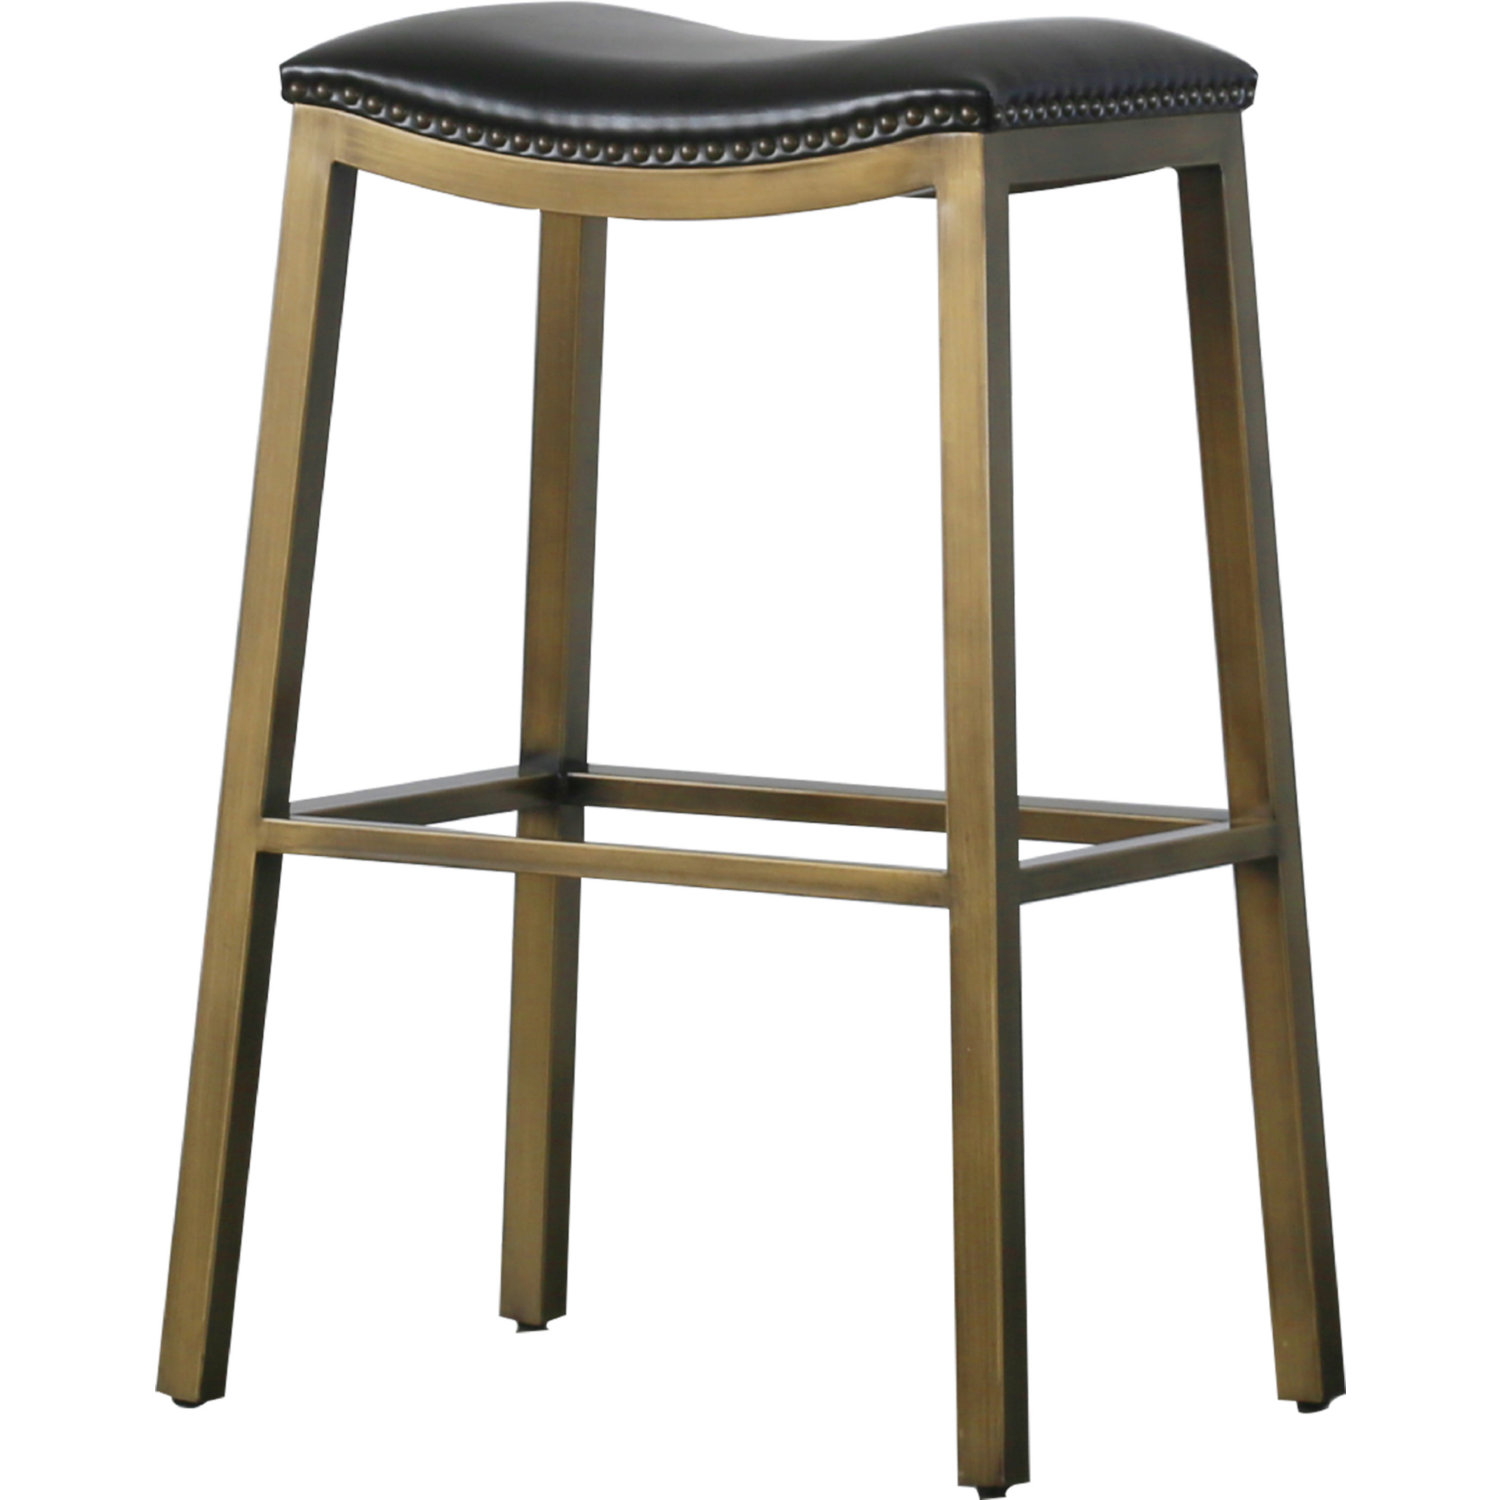 Awesome Elmo Bar Stool In Black Leather On Brushed Gold By New Pacific Direct Machost Co Dining Chair Design Ideas Machostcouk